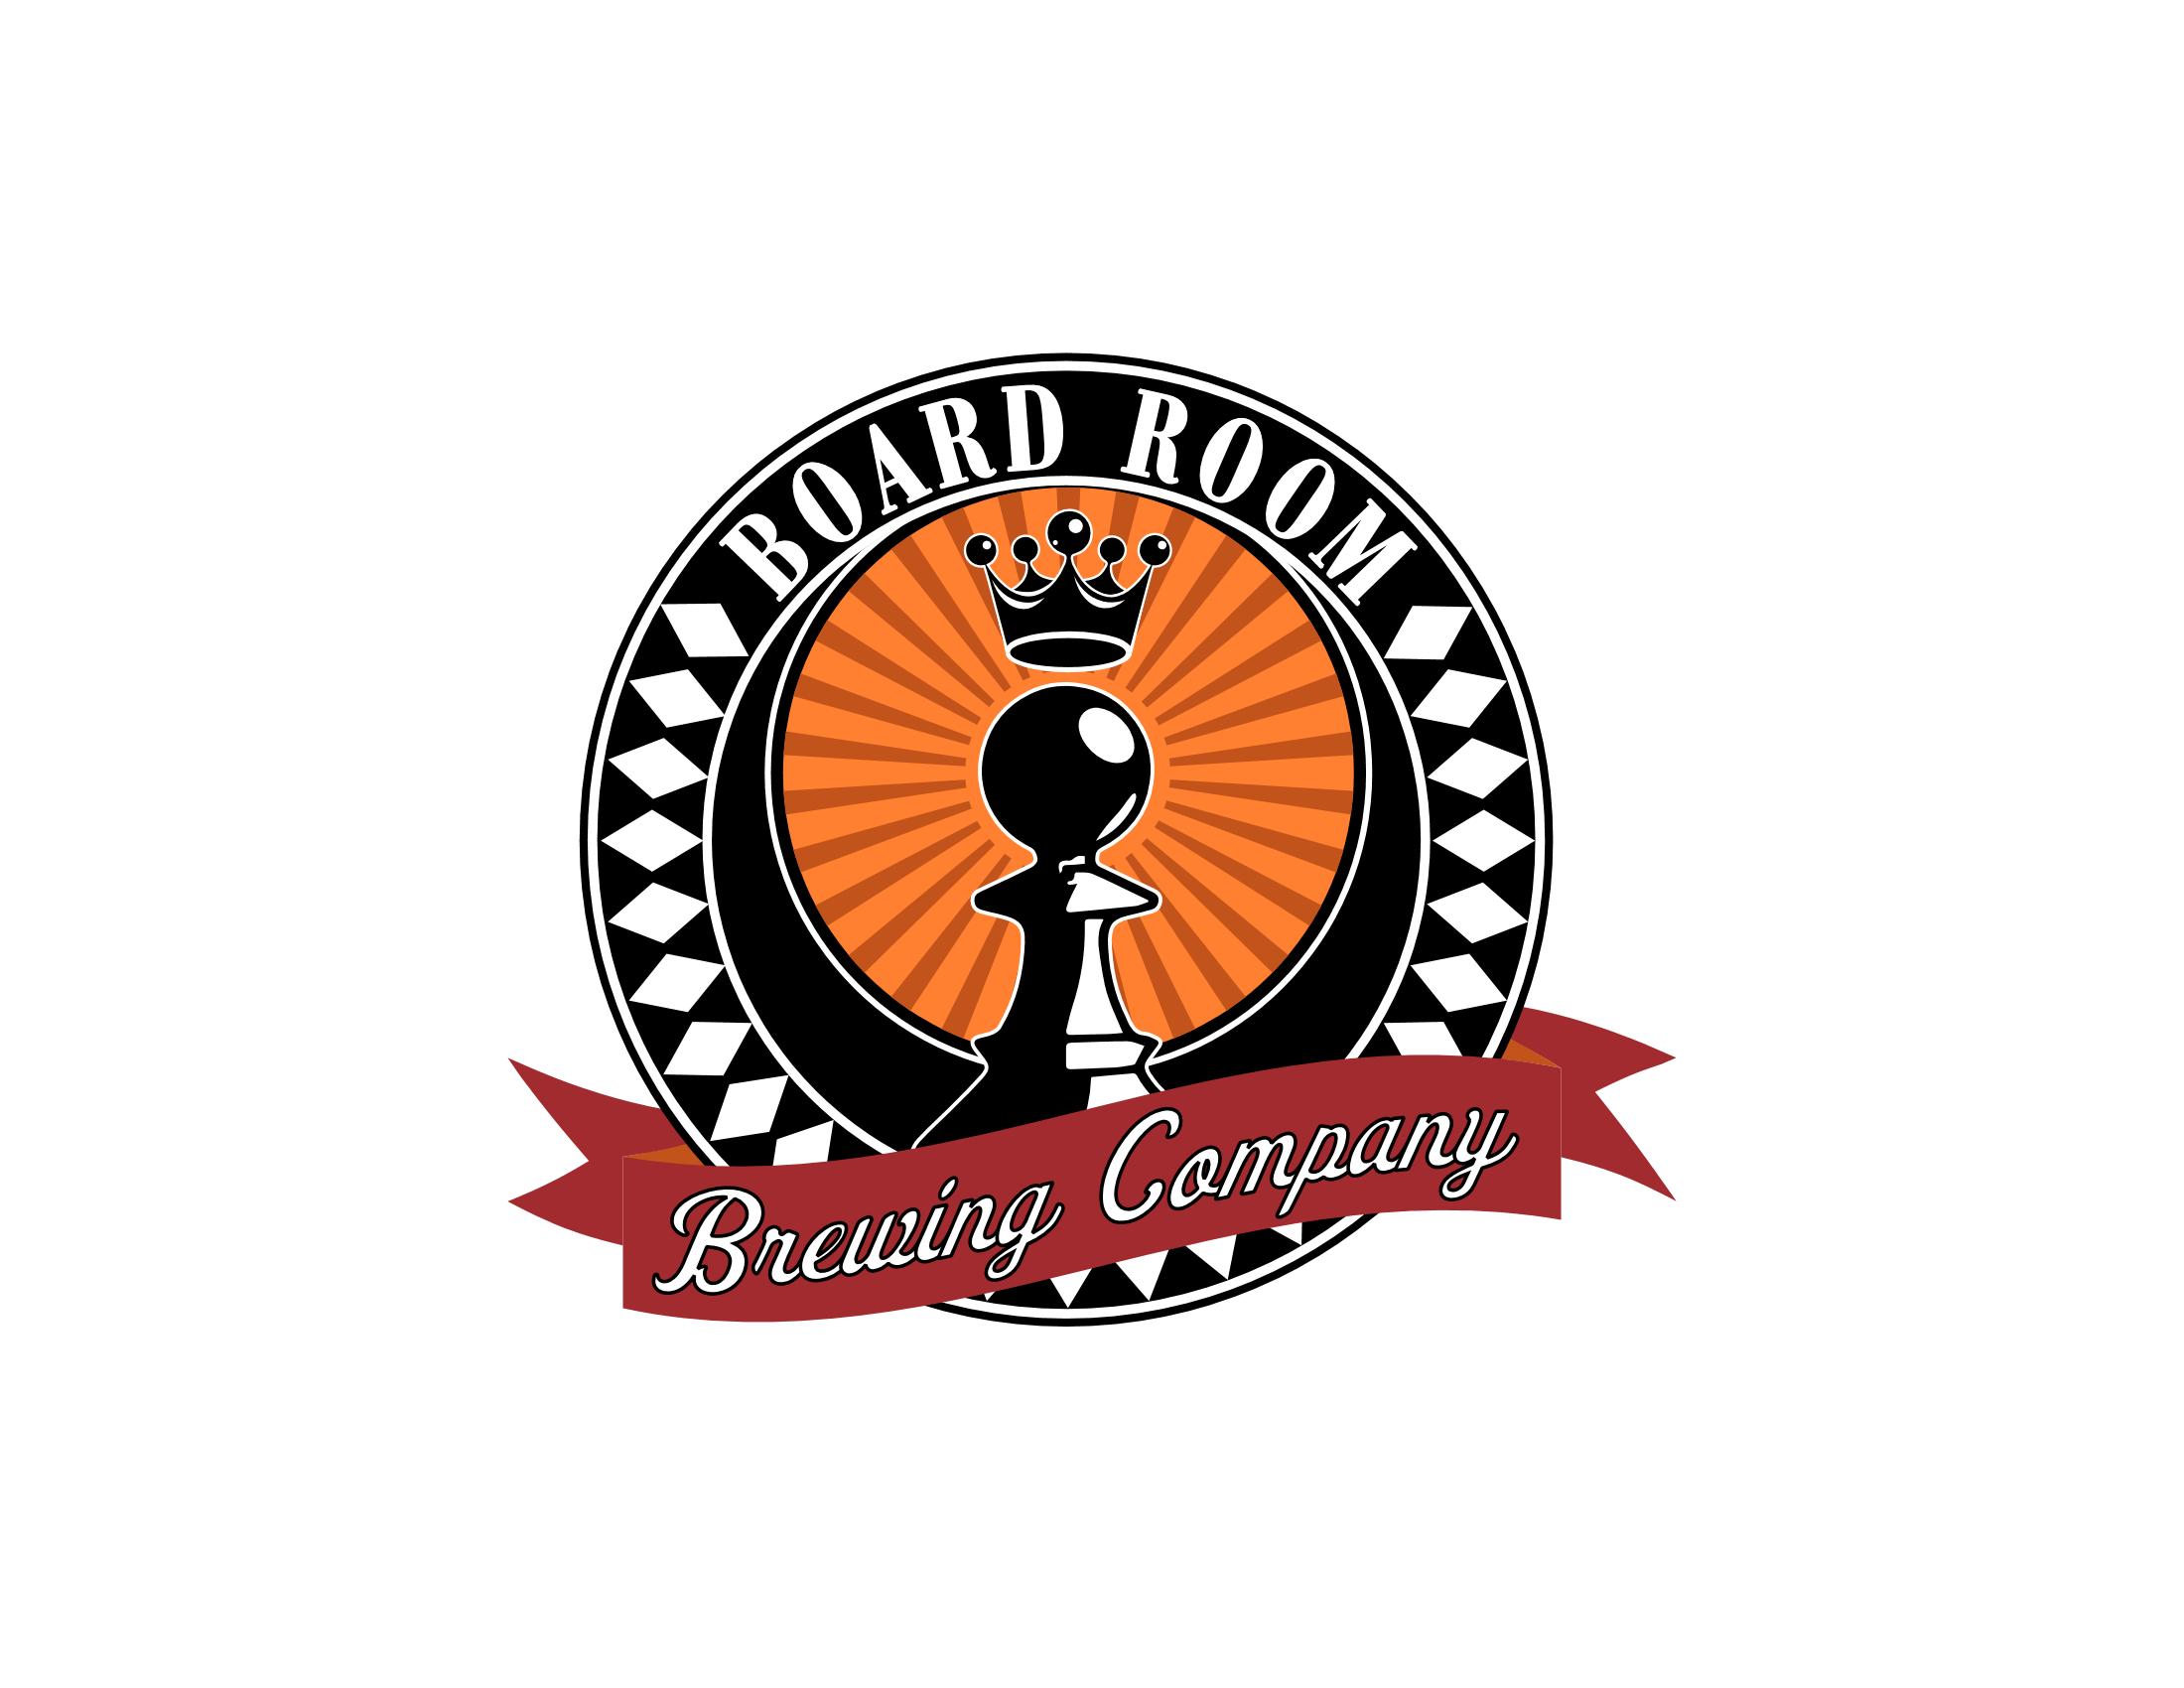 Boardroom Brewing Company logo